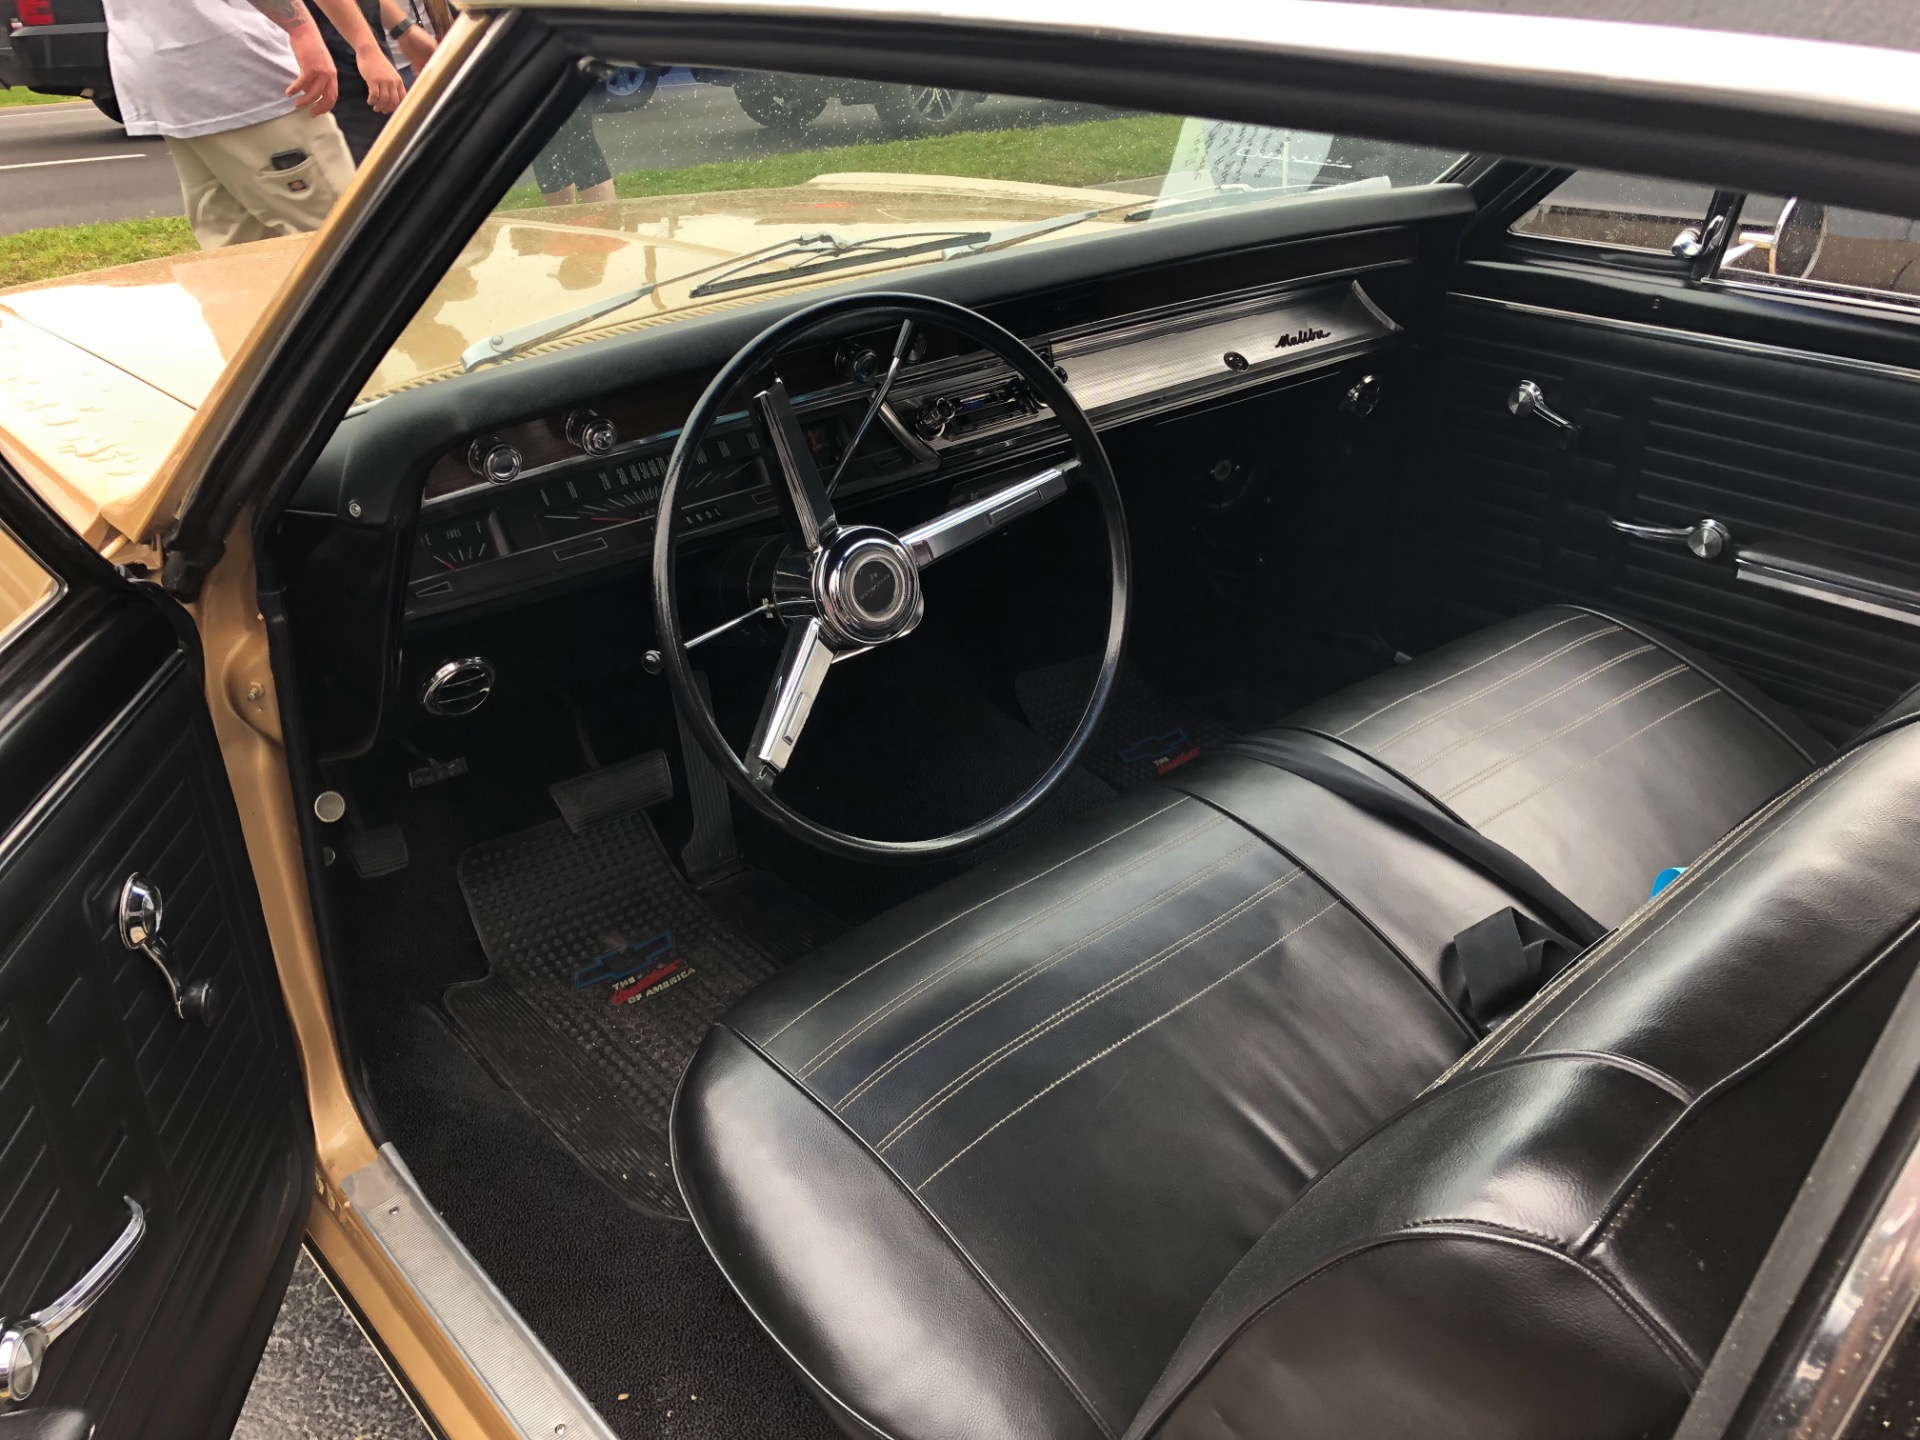 Used 1967 Chevrolet Chevelle -MALIBU 327-AUTOMATIC-AIR CONDITIONING-SOUTHERN CLASSIC- | Mundelein, IL